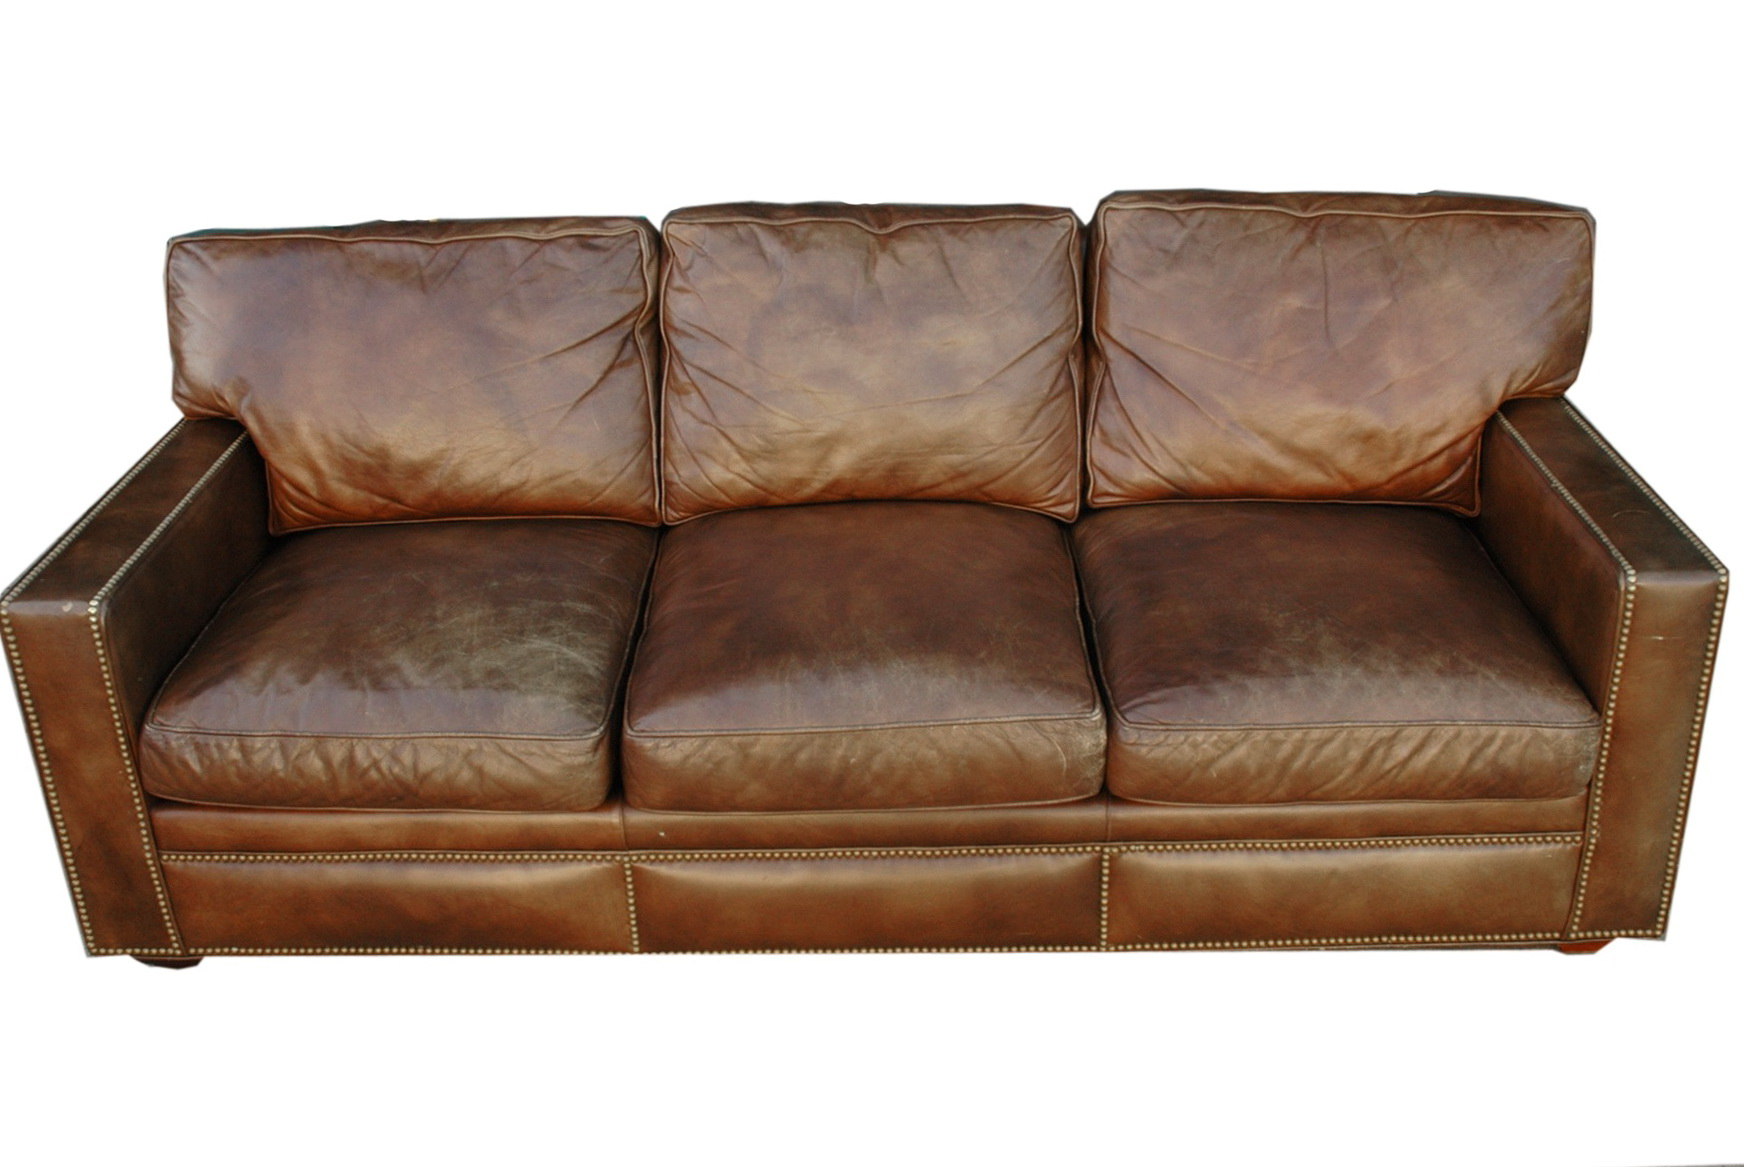 pics of distressed leather sofa | Distressed Leather Sectional | HomesFeed